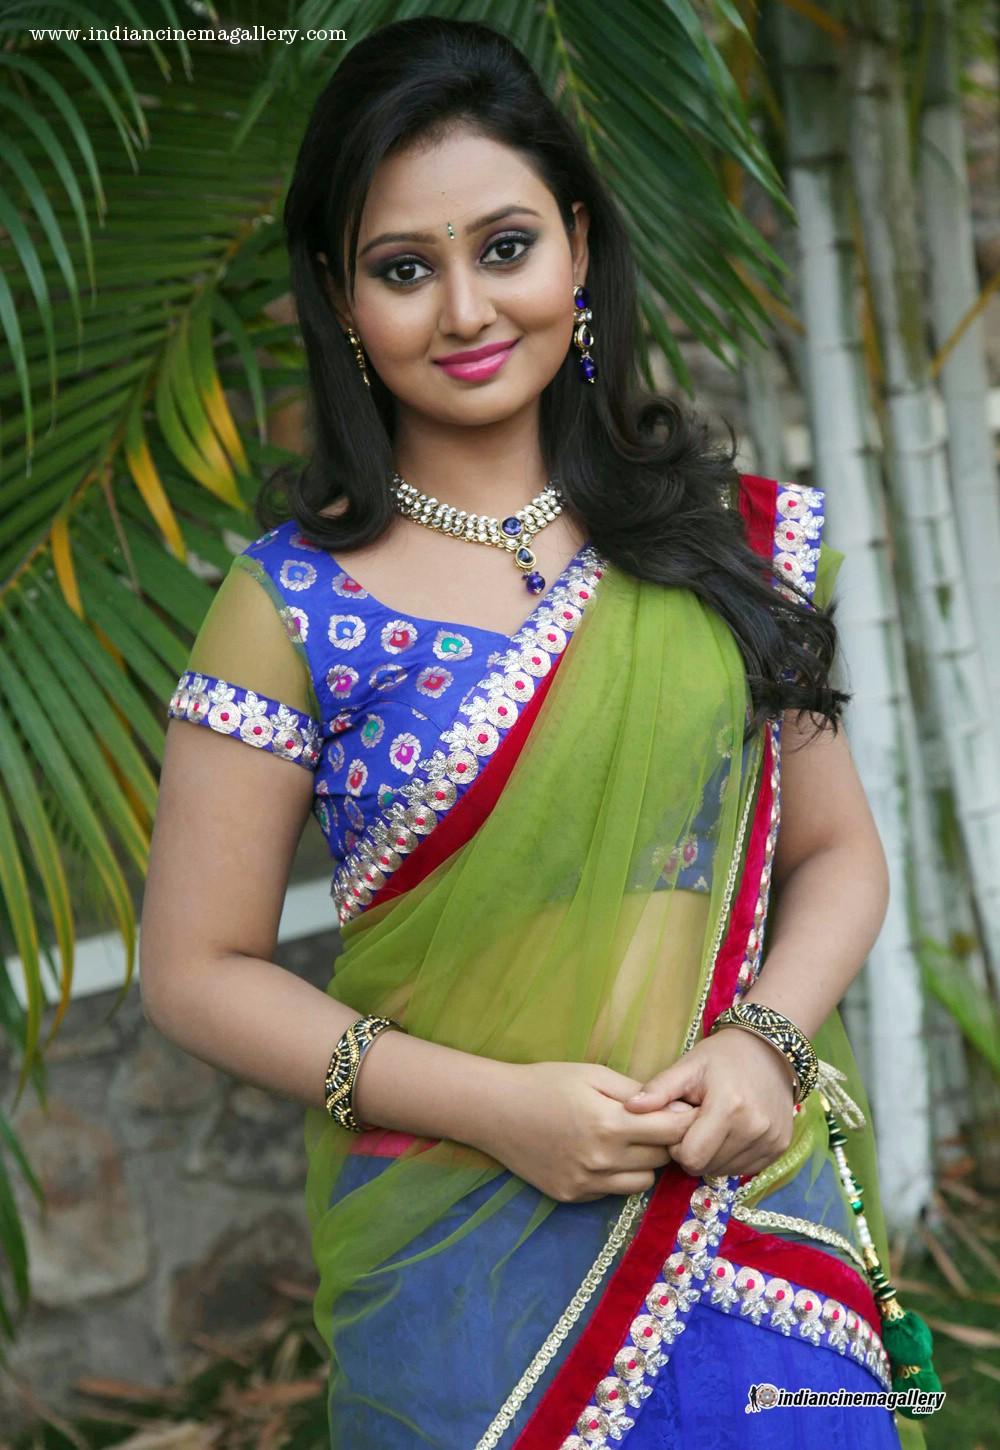 Amulya During Male Movie Press Meet - Amulya Recent , HD Wallpaper & Backgrounds